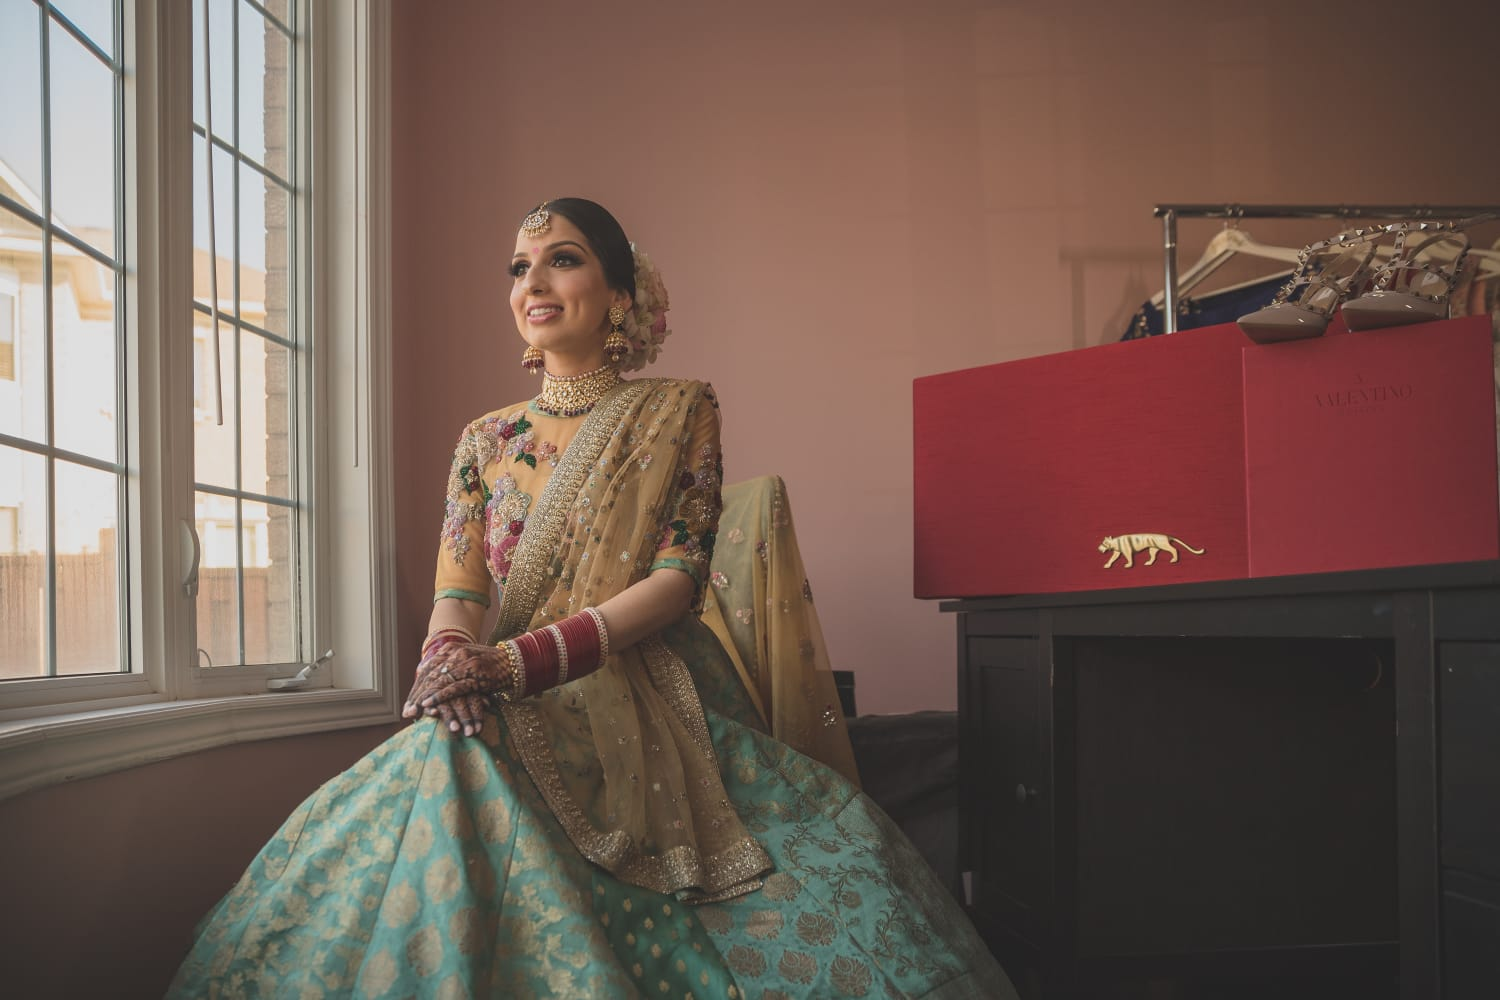 Real Bride Jas in Sabyasachi @ The Grand Trunk - The Grand Trunk